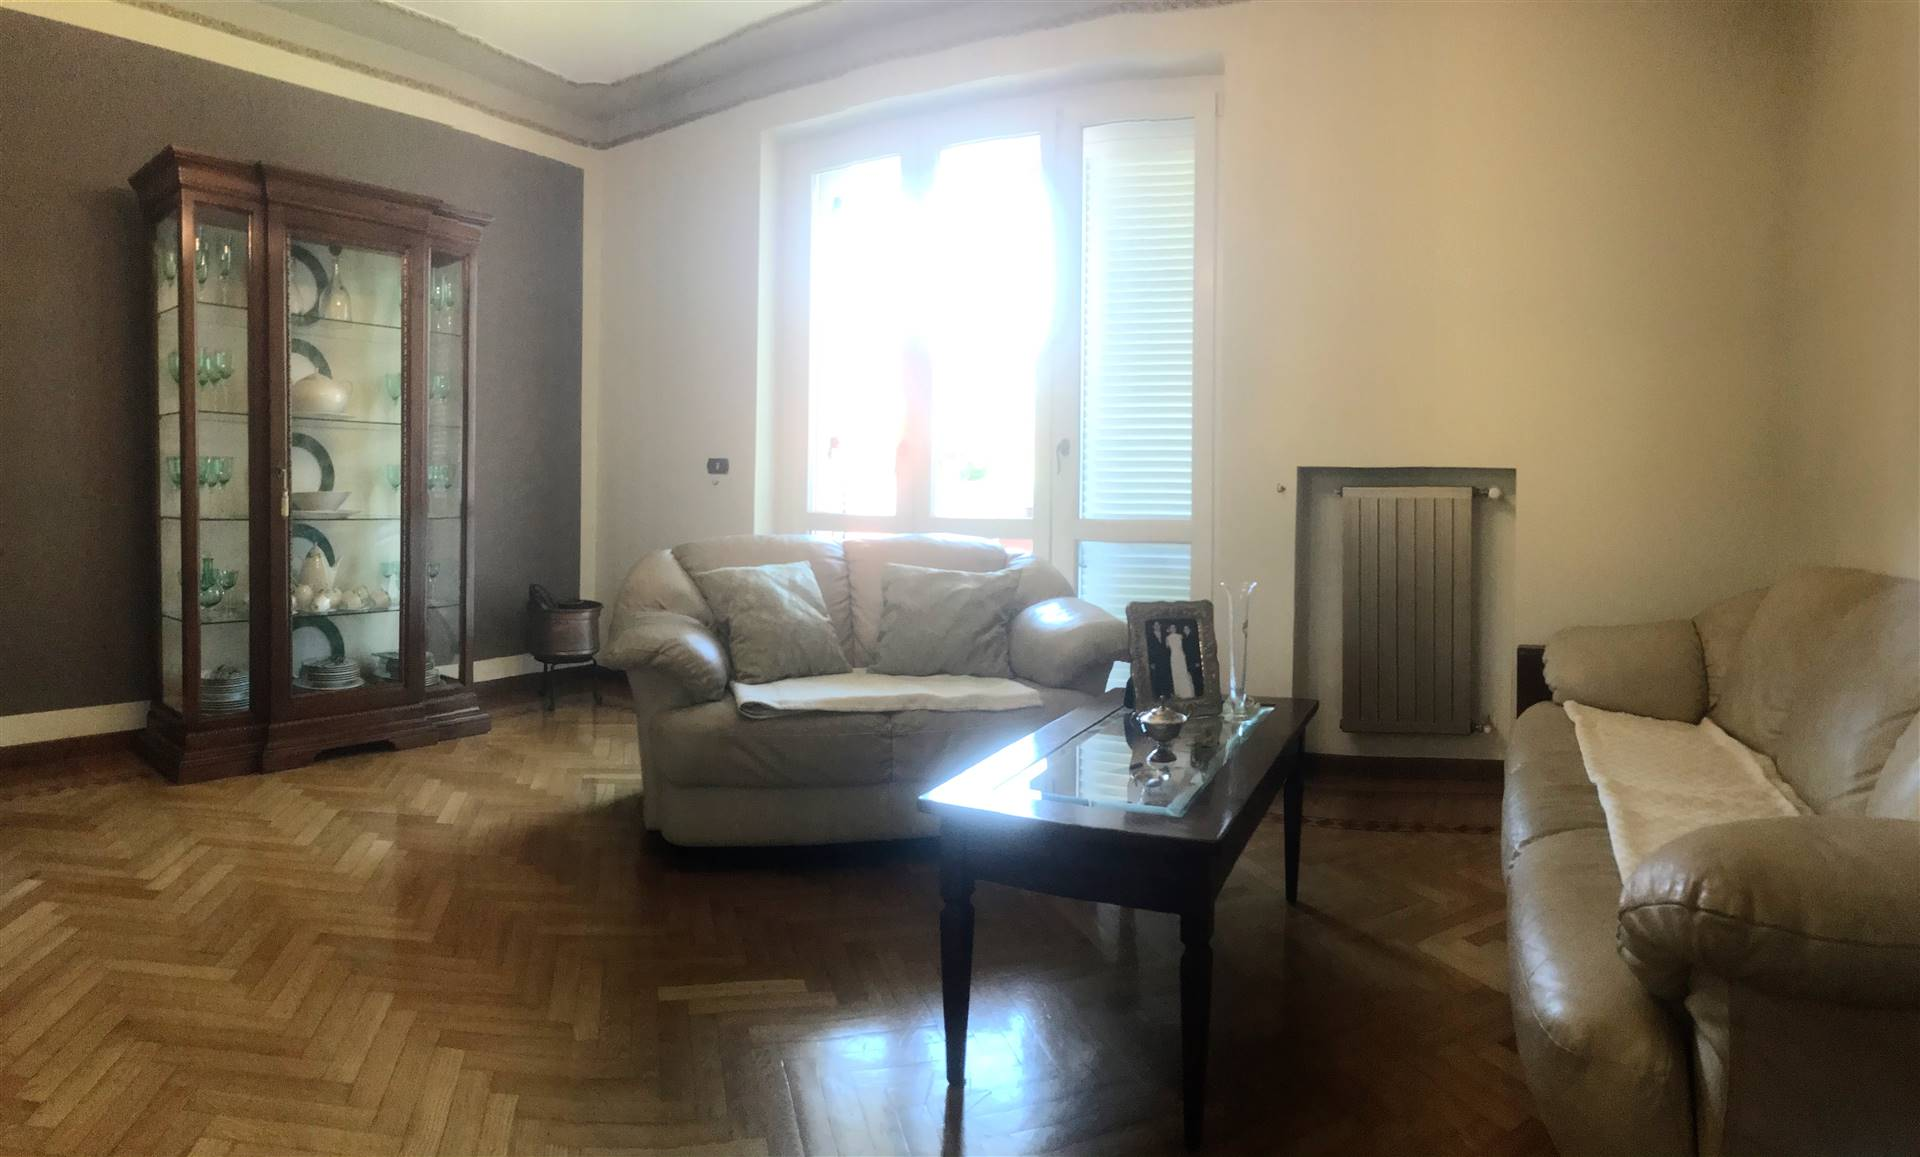 COLOGNO AL SERIO, Apartment for sale of 118 Sq. mt., Excellent Condition, Heating Individual heating system, placed at 2° on 2, composed by: 4 Rooms,